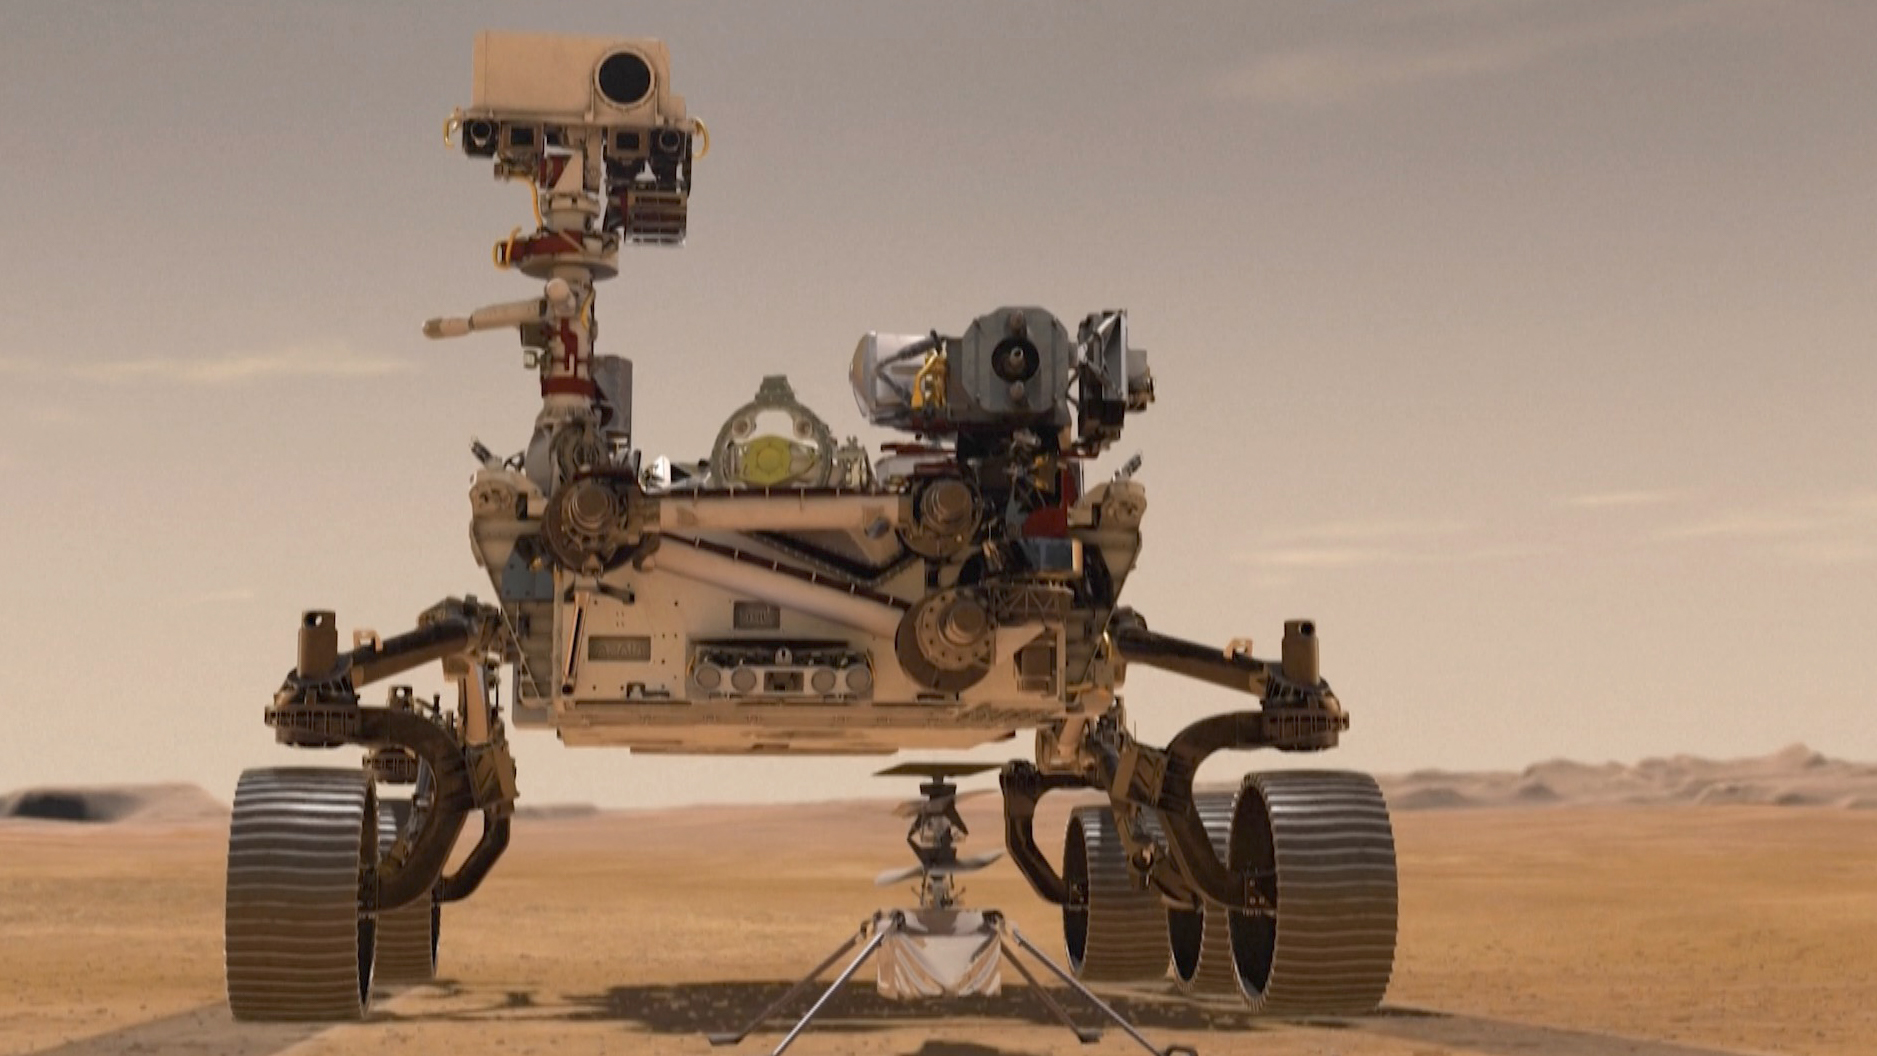 NASA's Perseverance rover will scour Mars for signs of ...